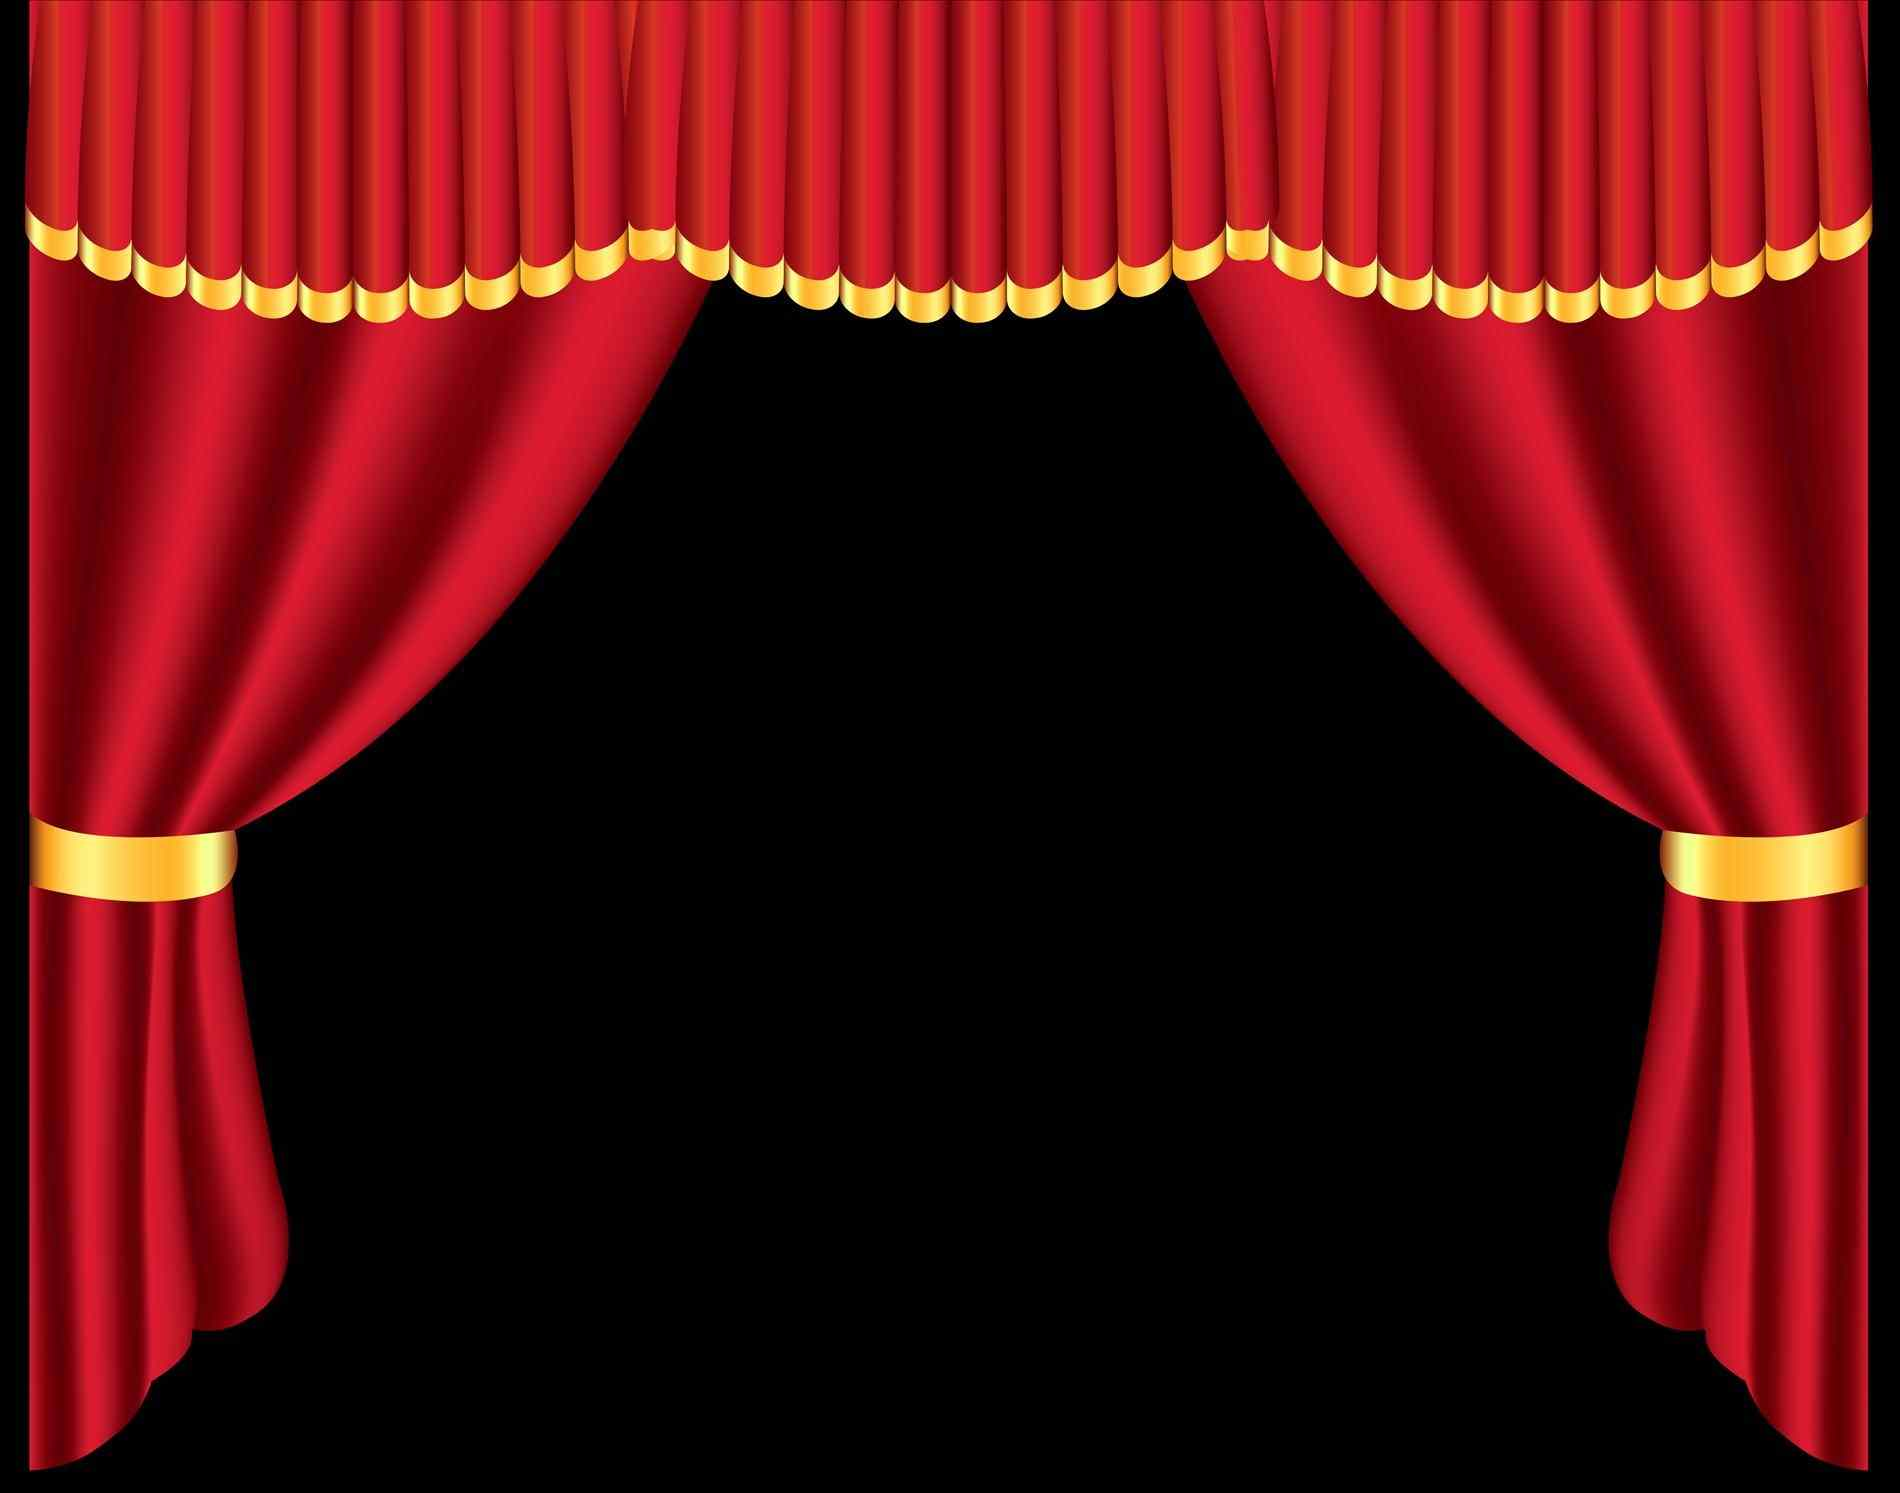 Stage clipart stage curtain. Curtains png integralbookcom curtainsclipart